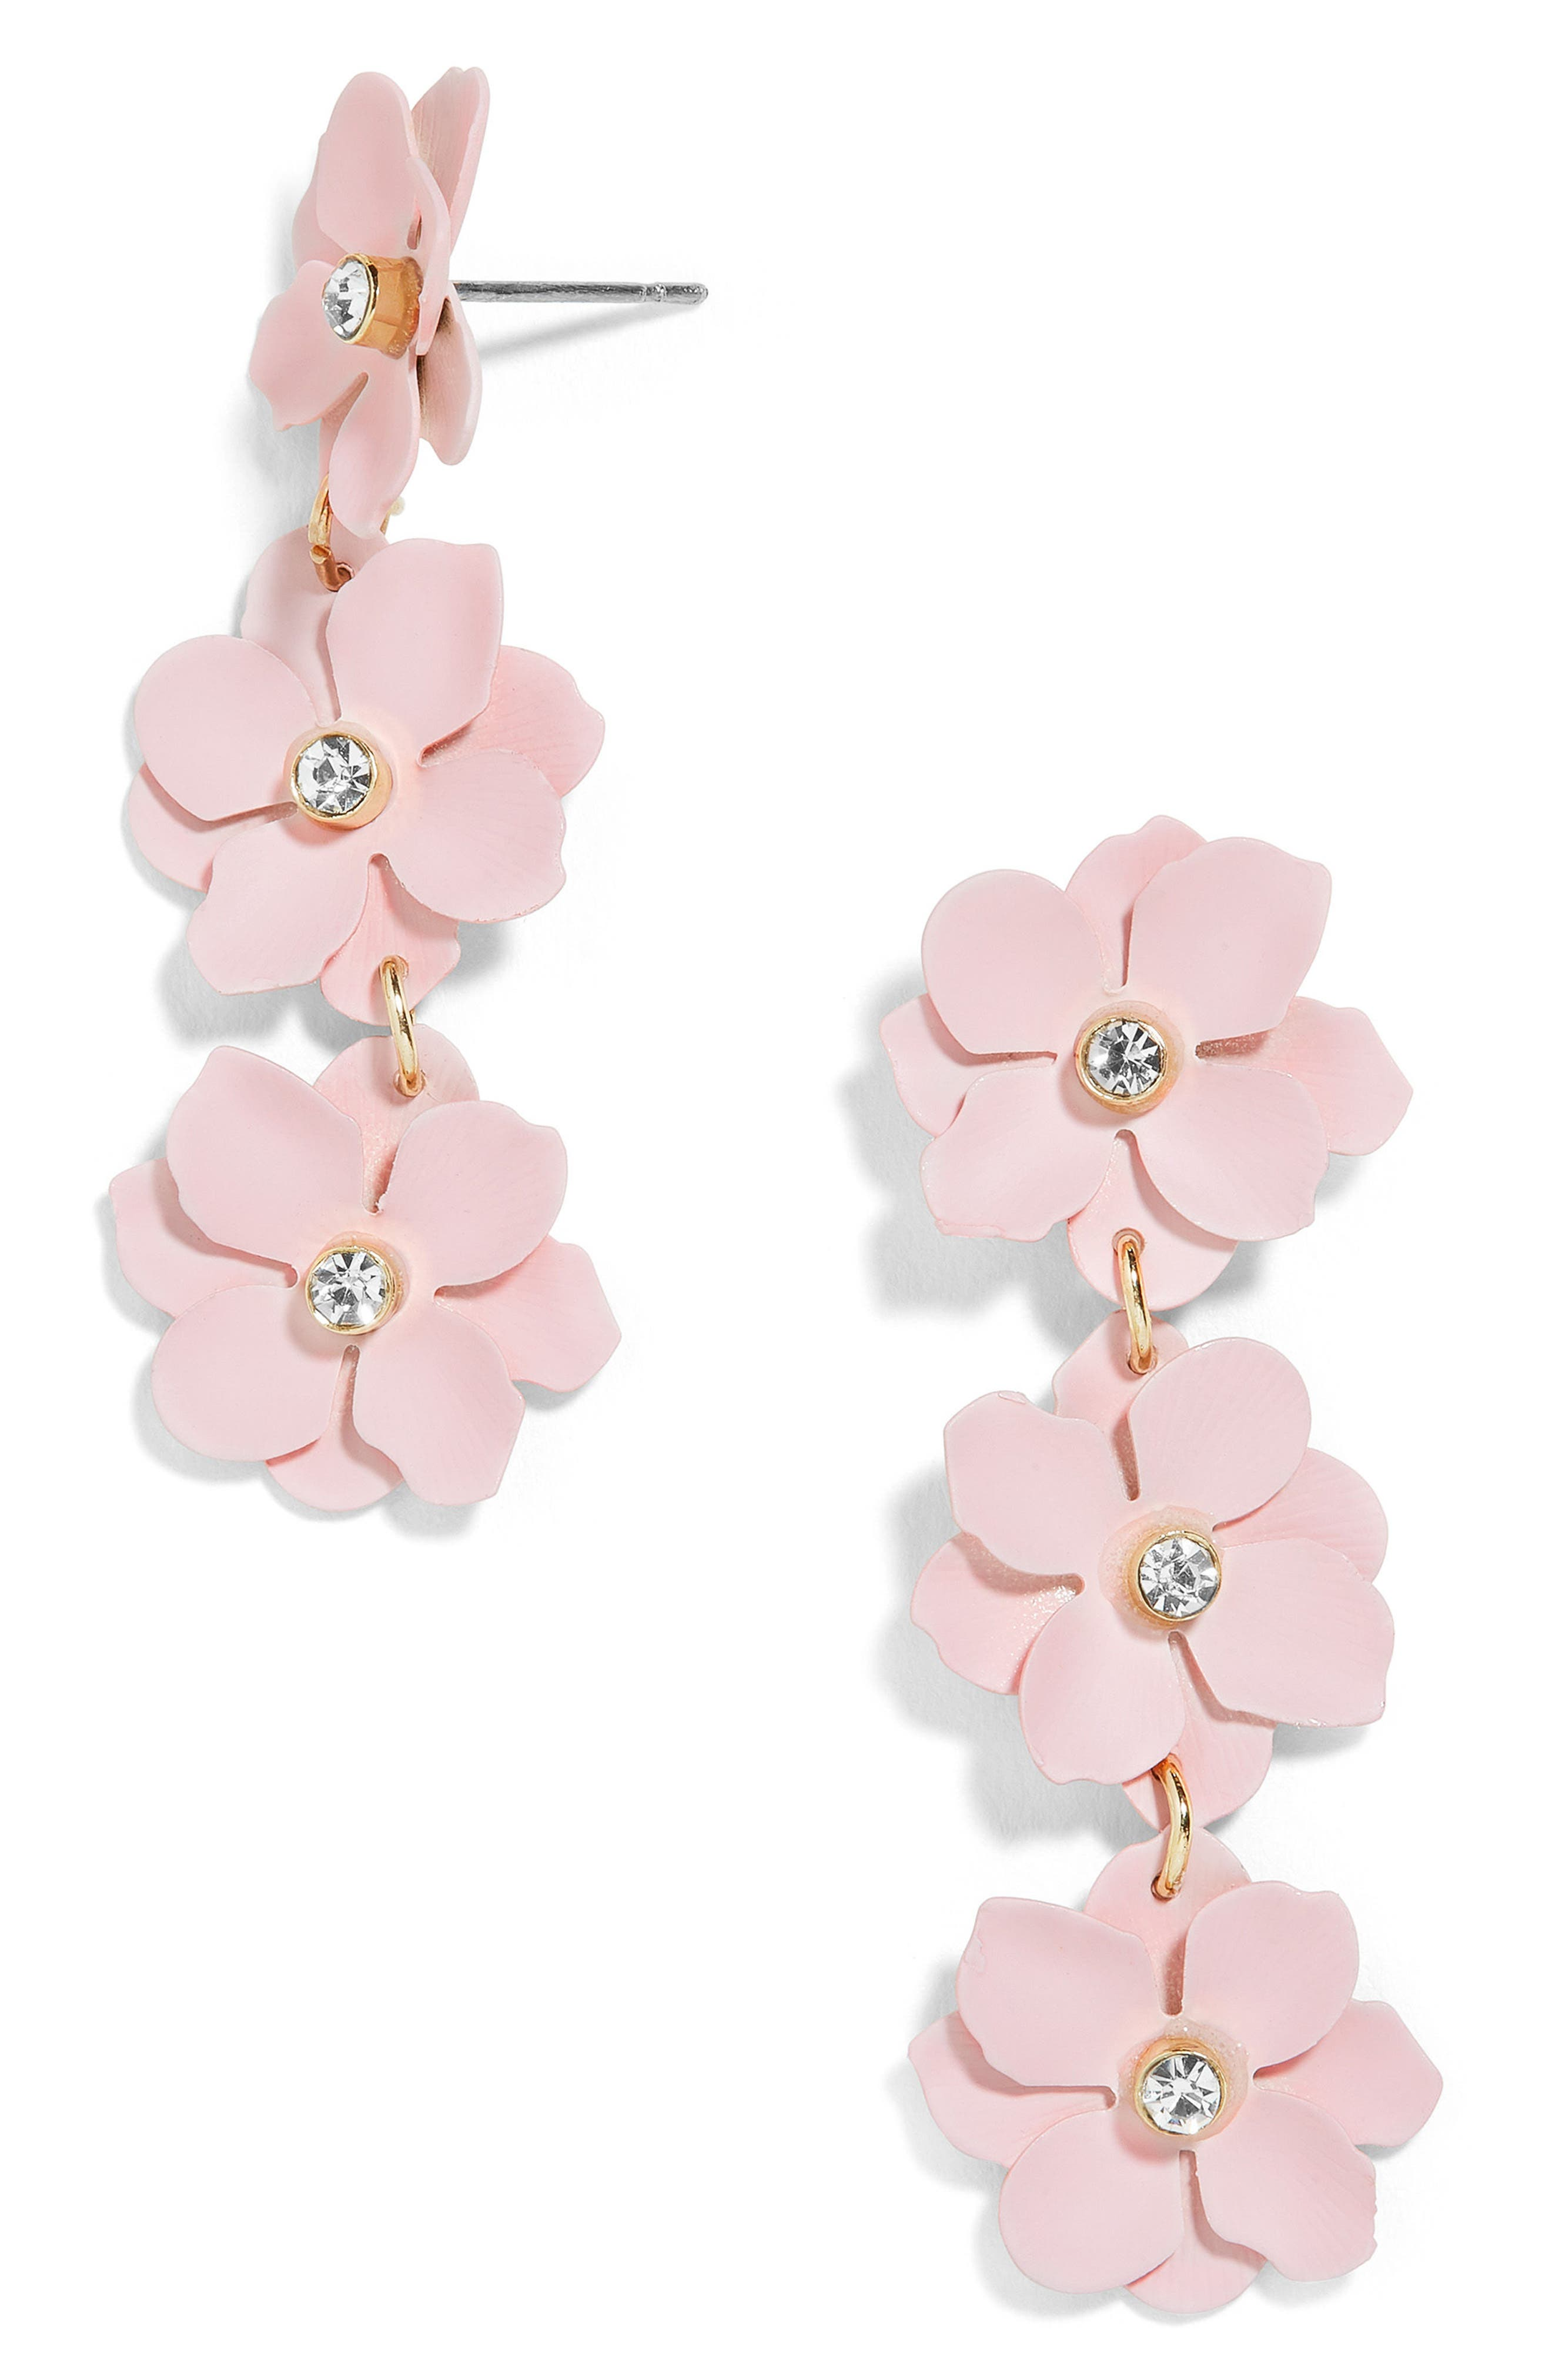 Kimi Flower Drop Earrings,                             Main thumbnail 1, color,                             650